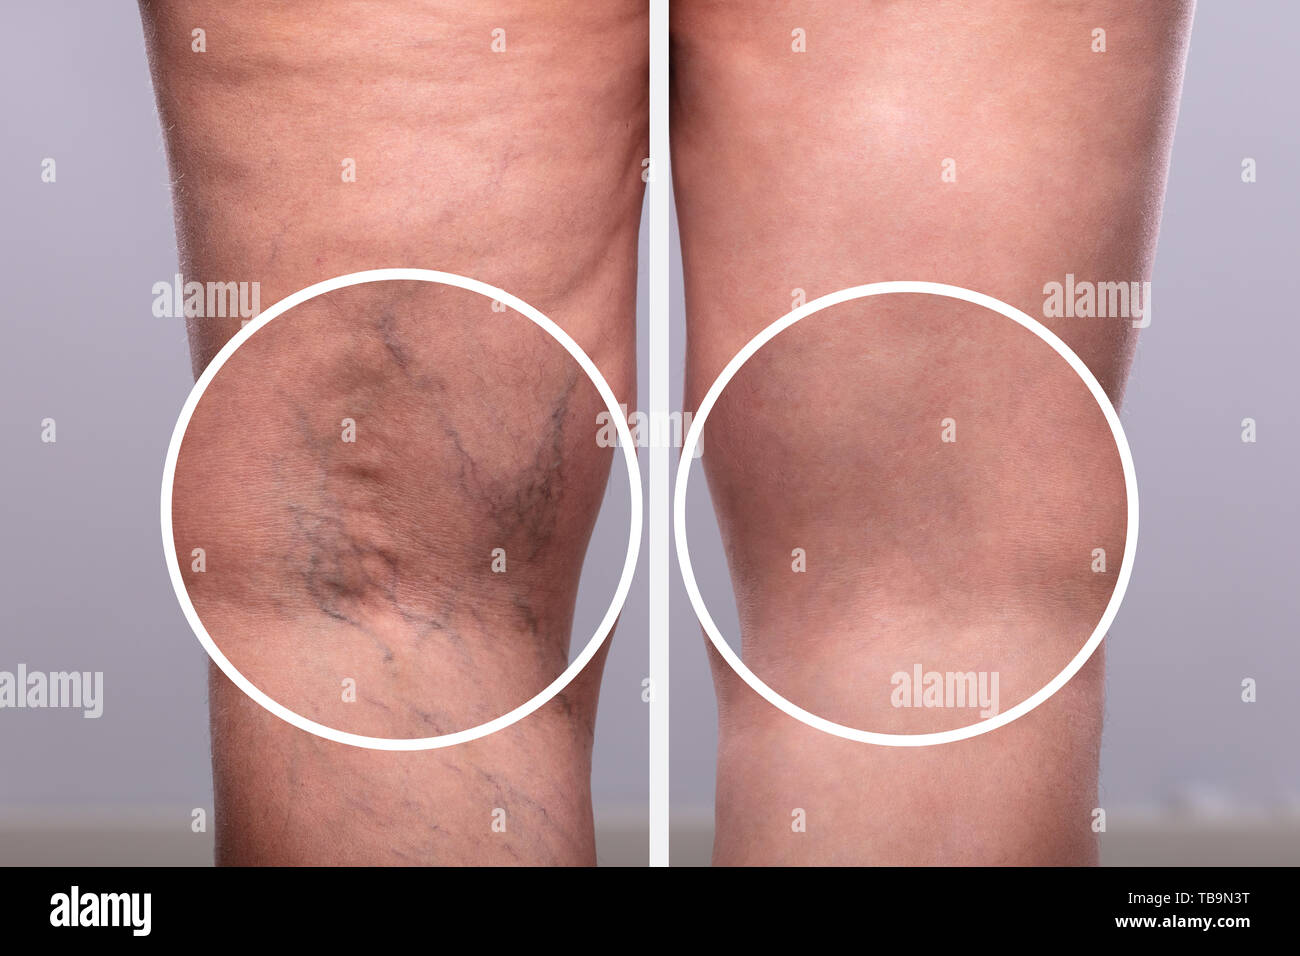 Phlebitis Stock Photos & Phlebitis Stock Images - Alamy